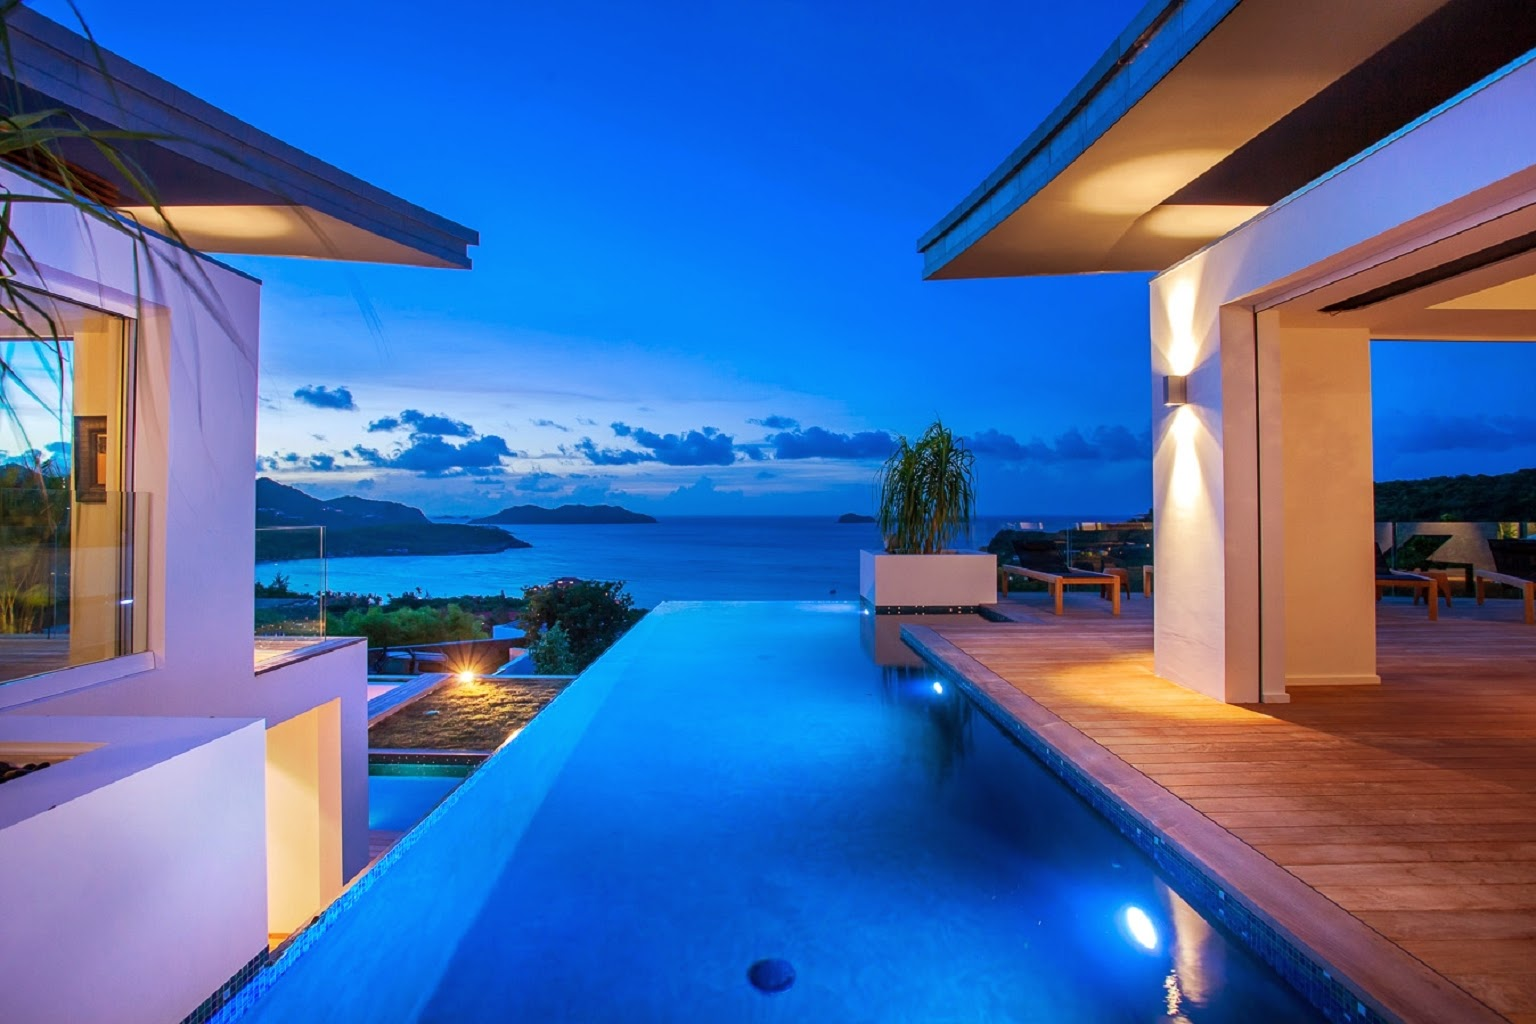 st barth vacation rentals st barth properties. Black Bedroom Furniture Sets. Home Design Ideas